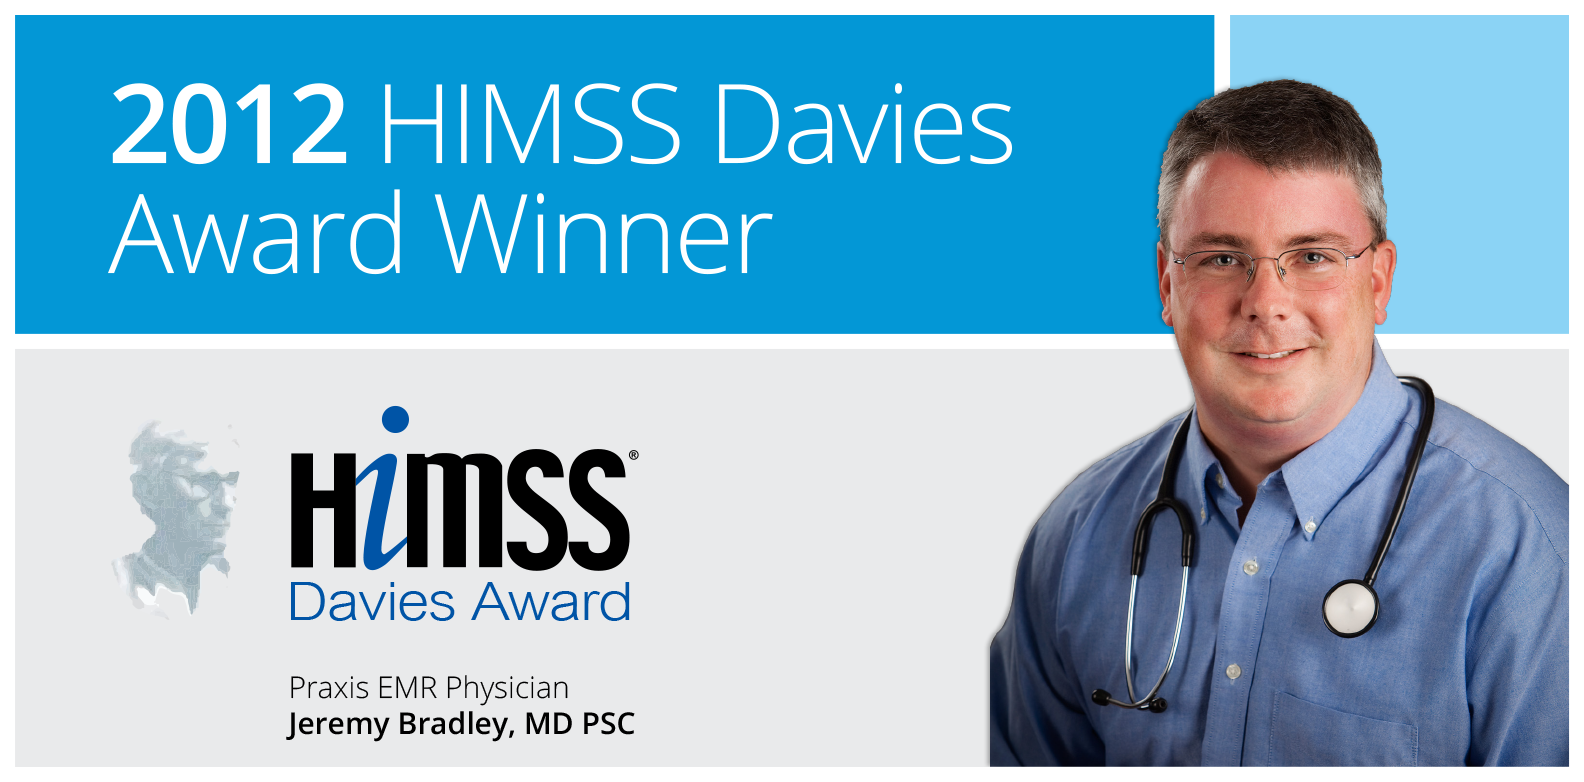 himss davies award winners Topic: research the himss davies award winners review the case study for one of them compare their experience with the learning from this course.